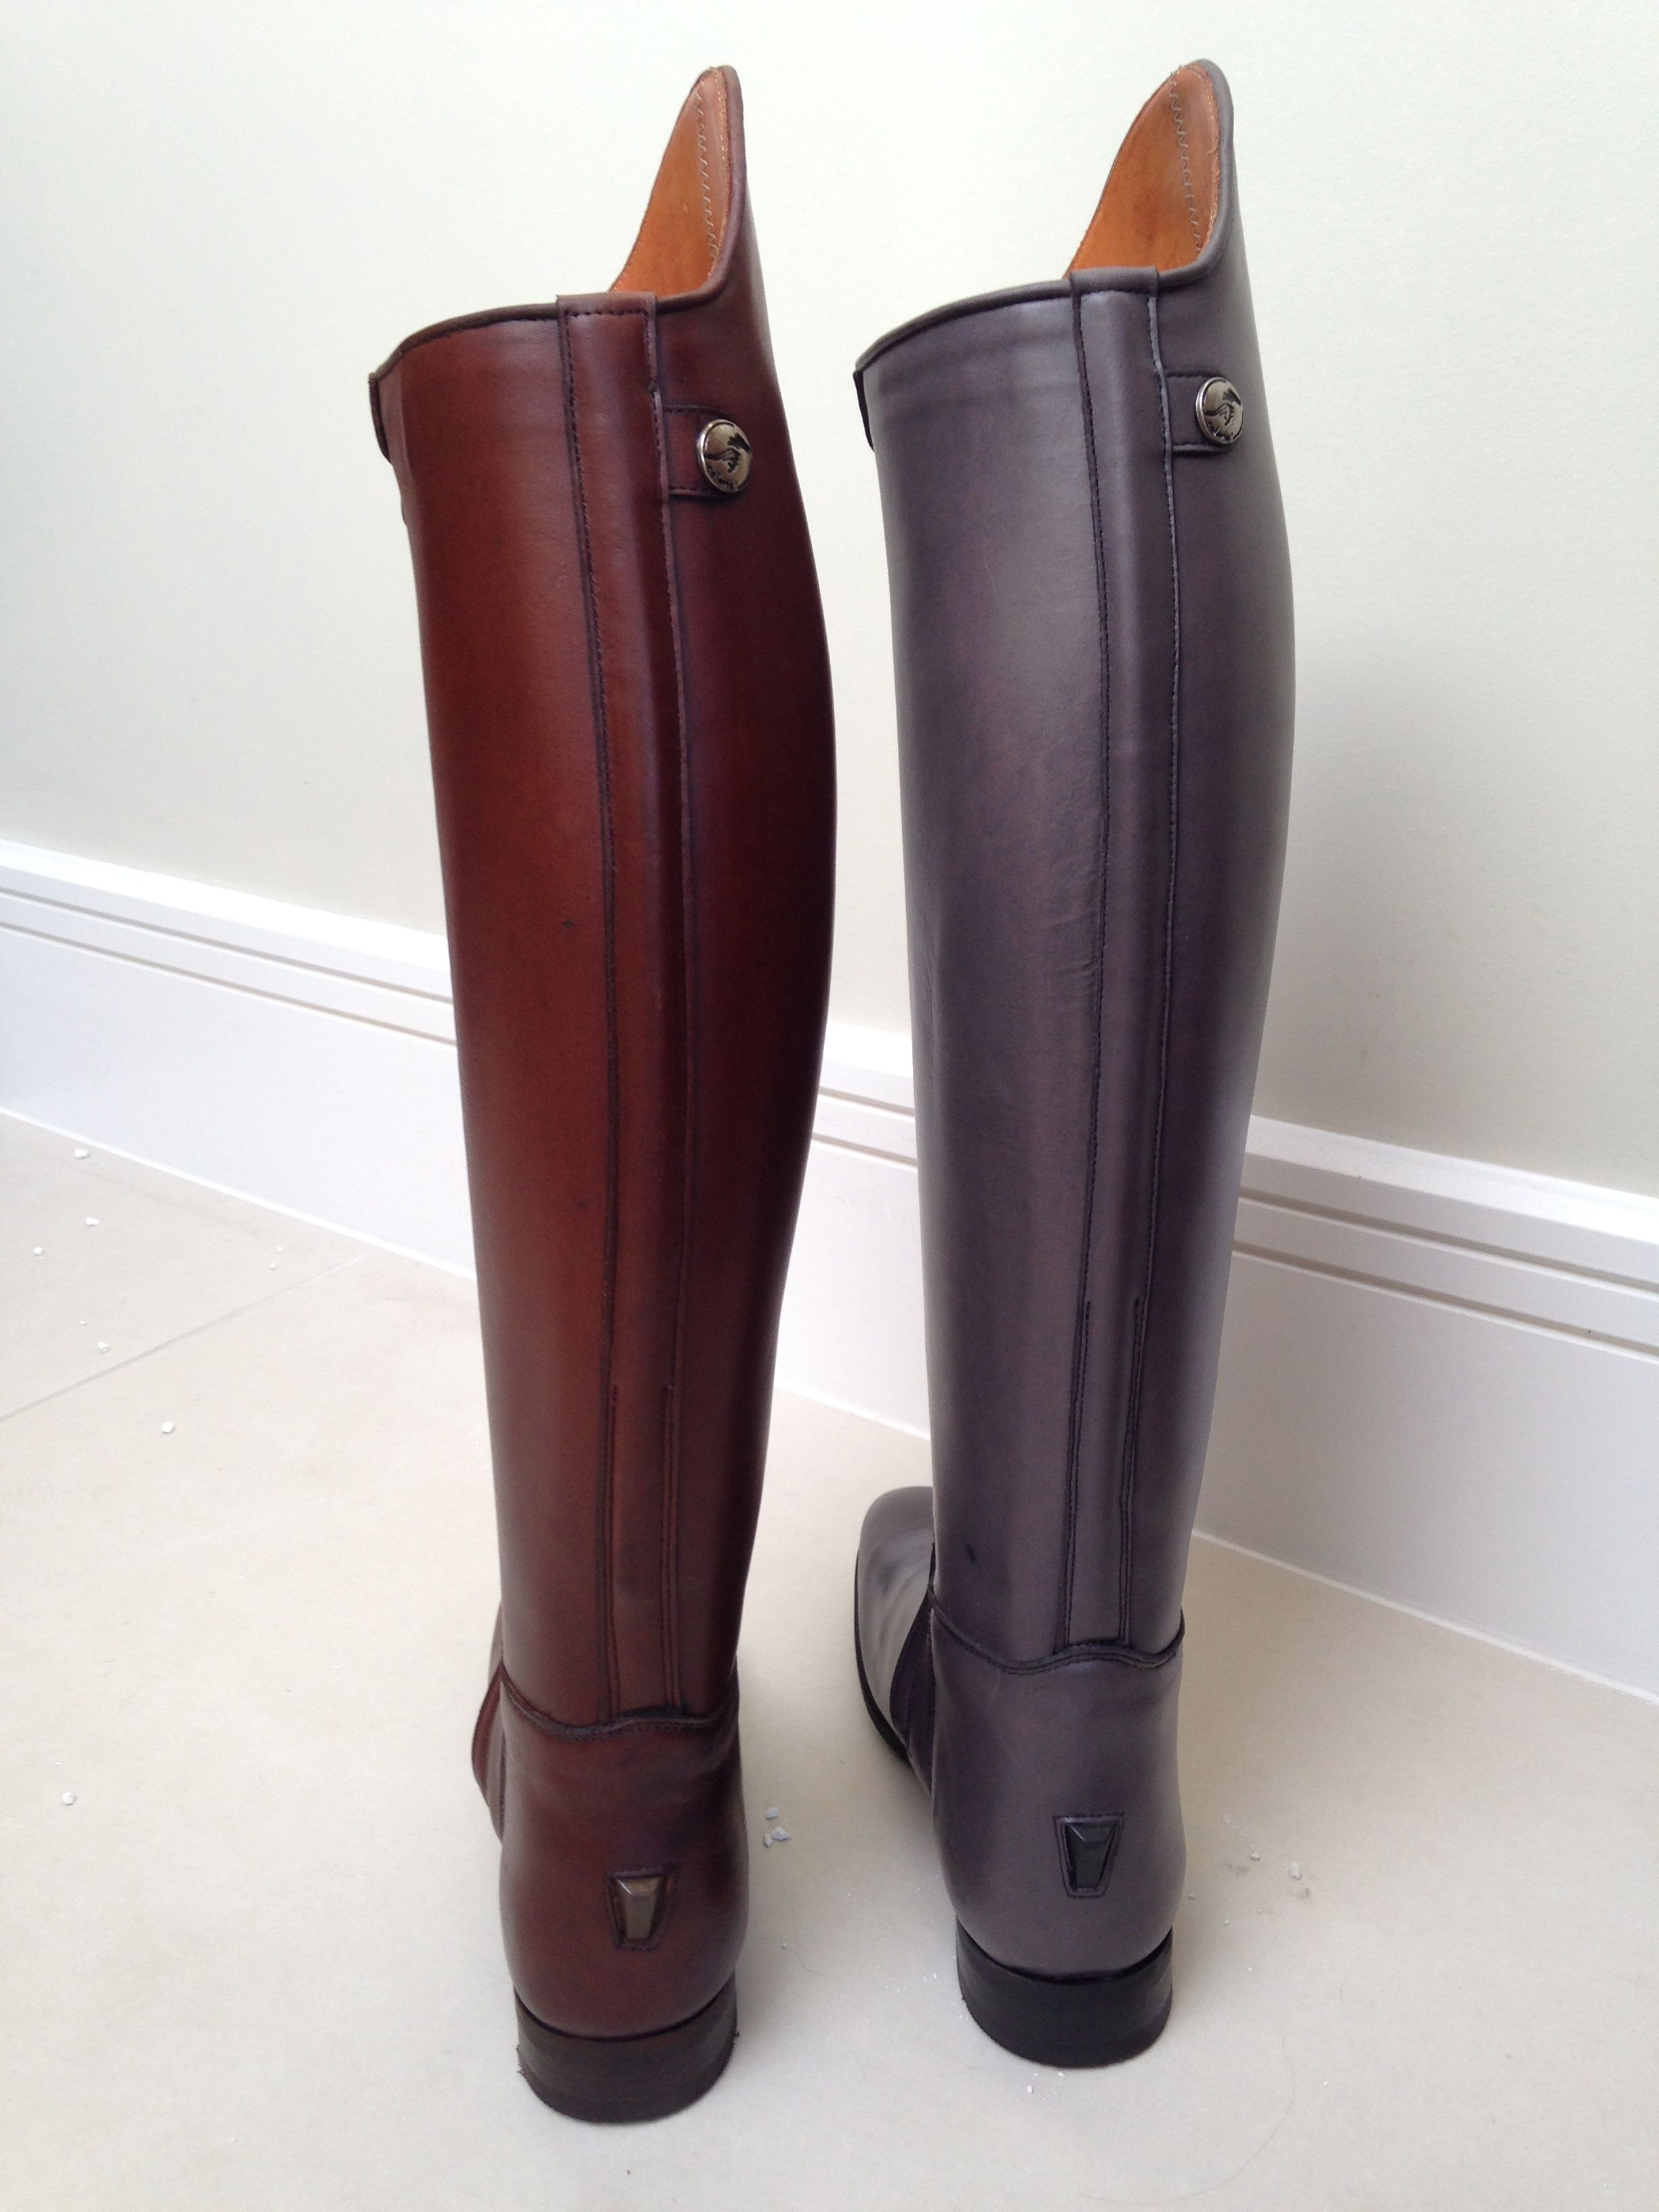 65f048cdd0339 Grey and Chestnut Brown with spur rests.Celeris boots